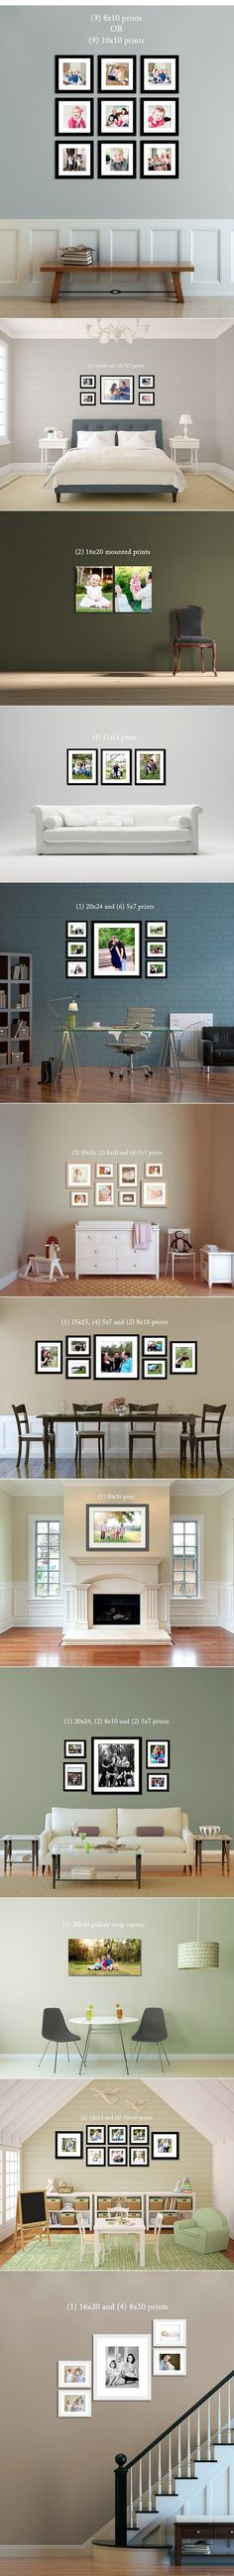 Great picture arrangement ideas. Fun wall color inspiration too!